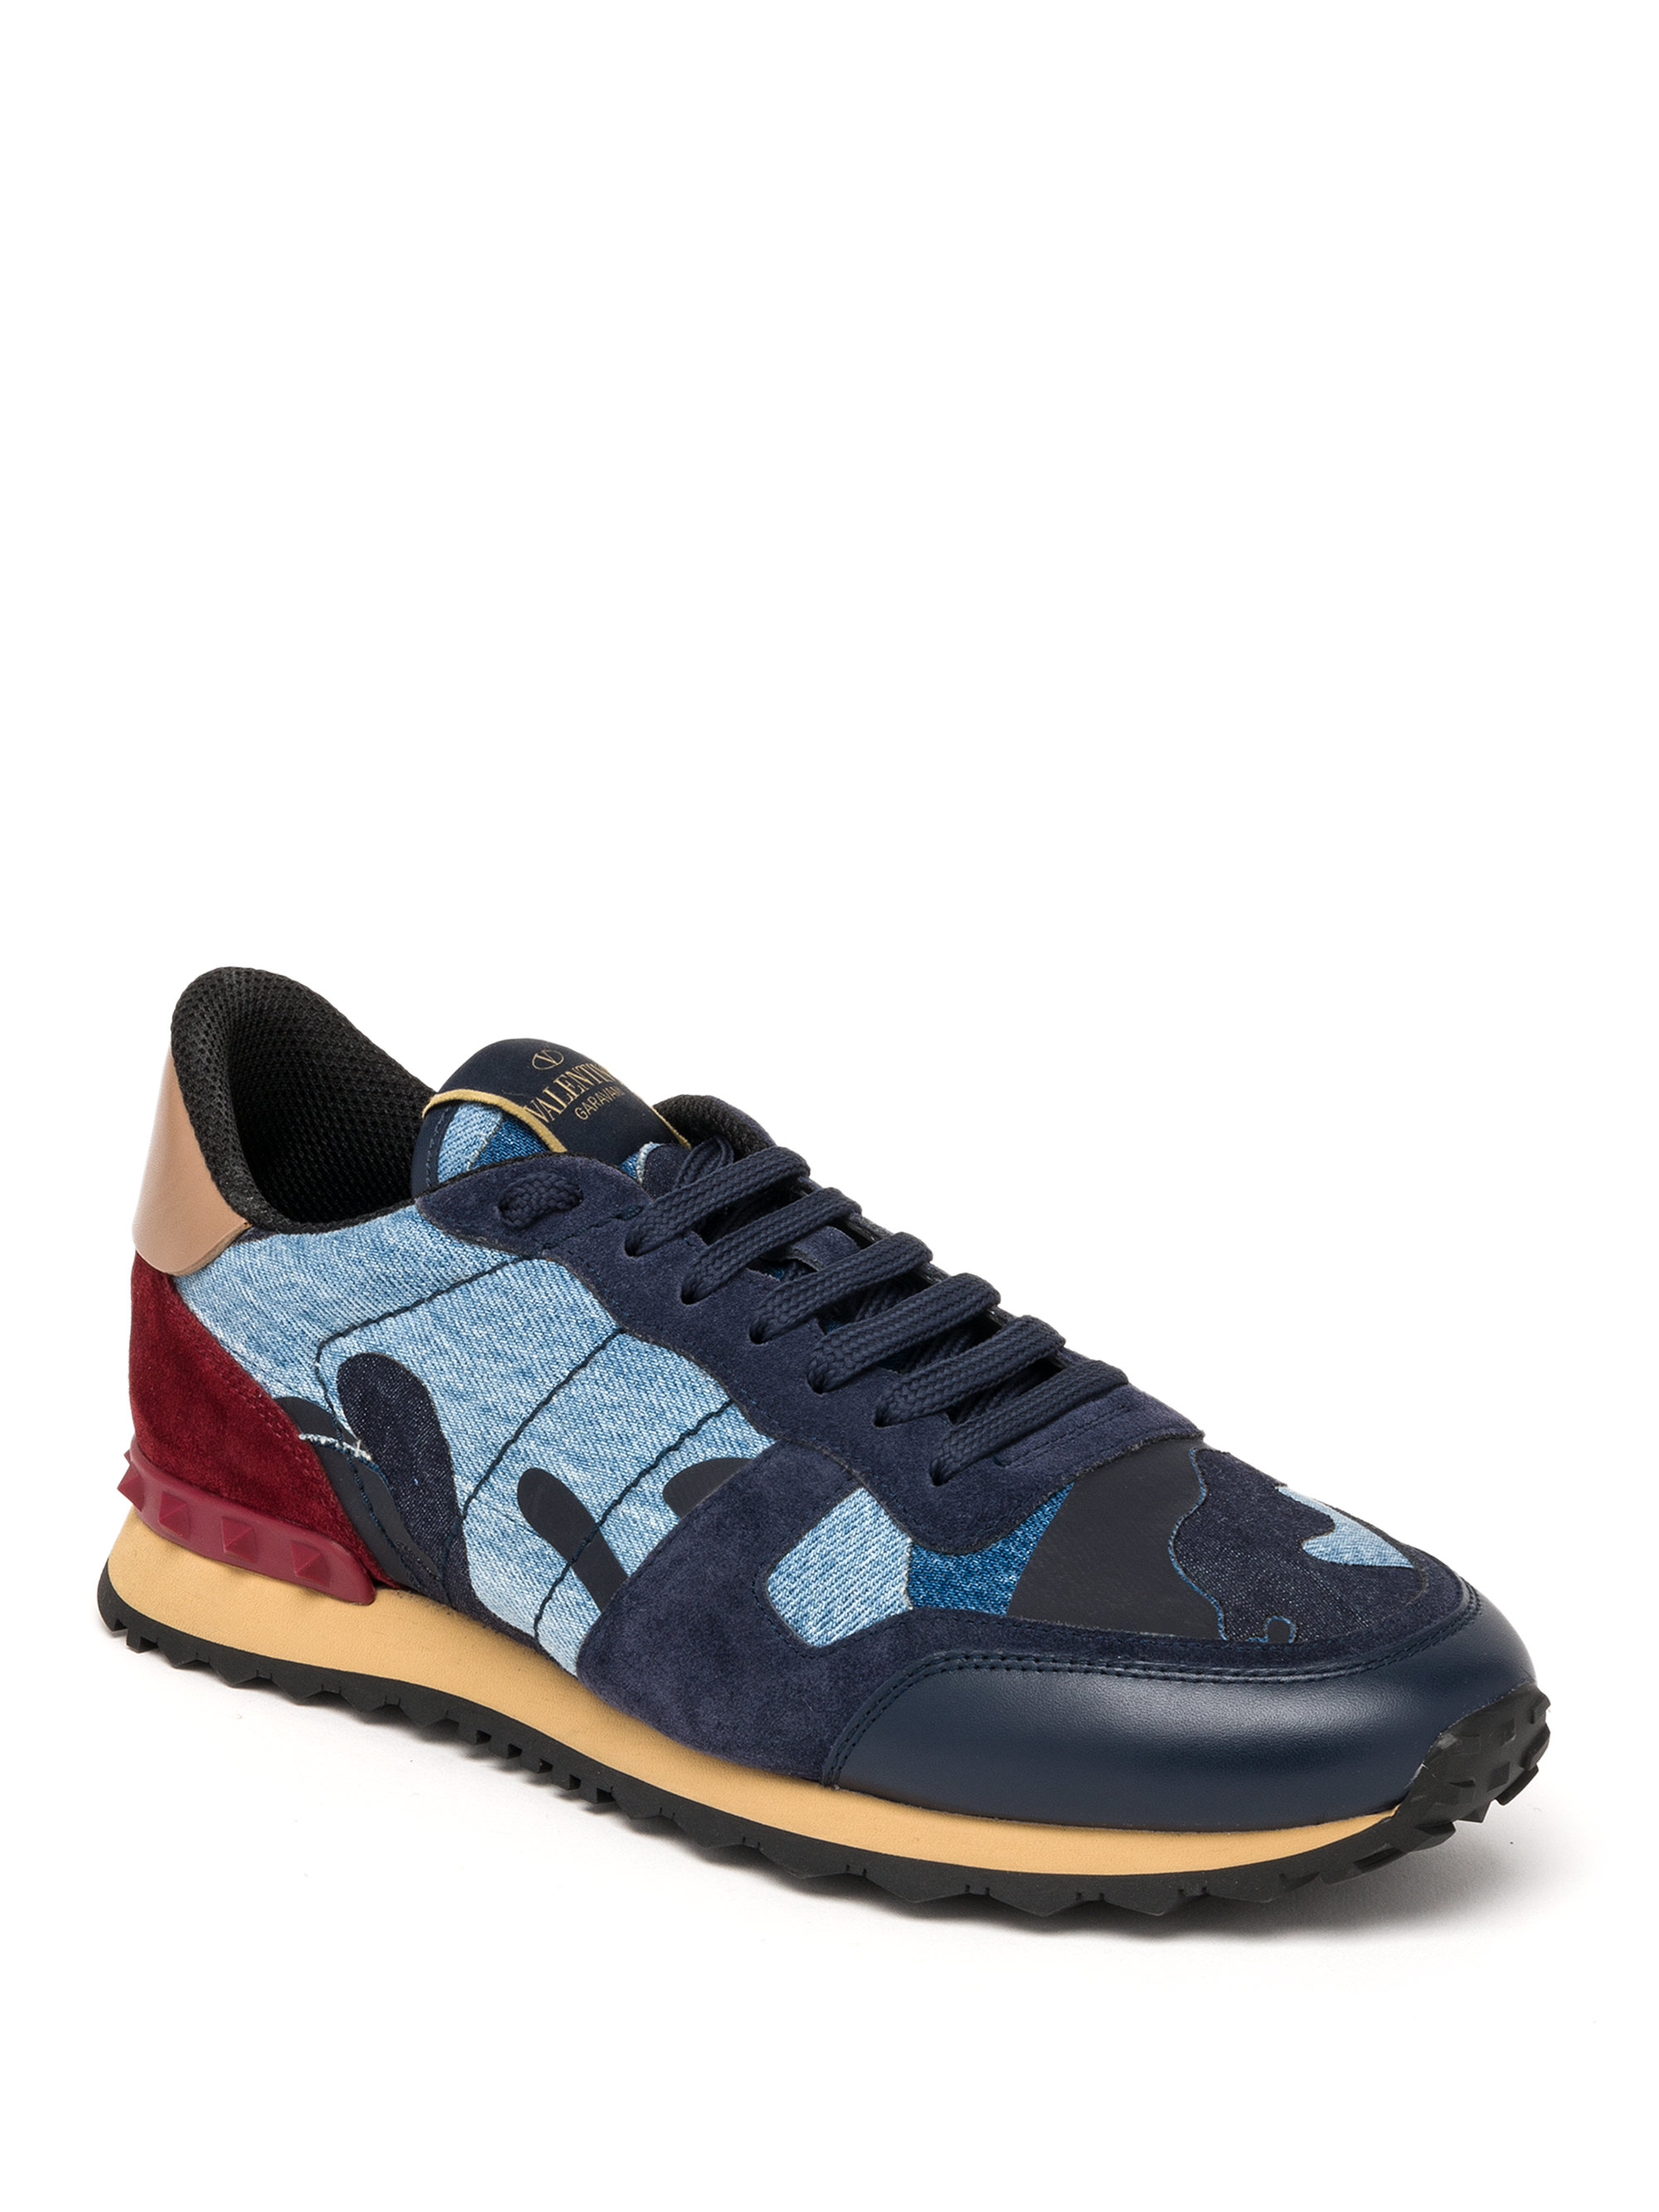 View Online Cheap Amazon Rockrunner camouflage sneakers - Blue Valentino Free Shipping Comfortable Excellent For Sale VTlagtw